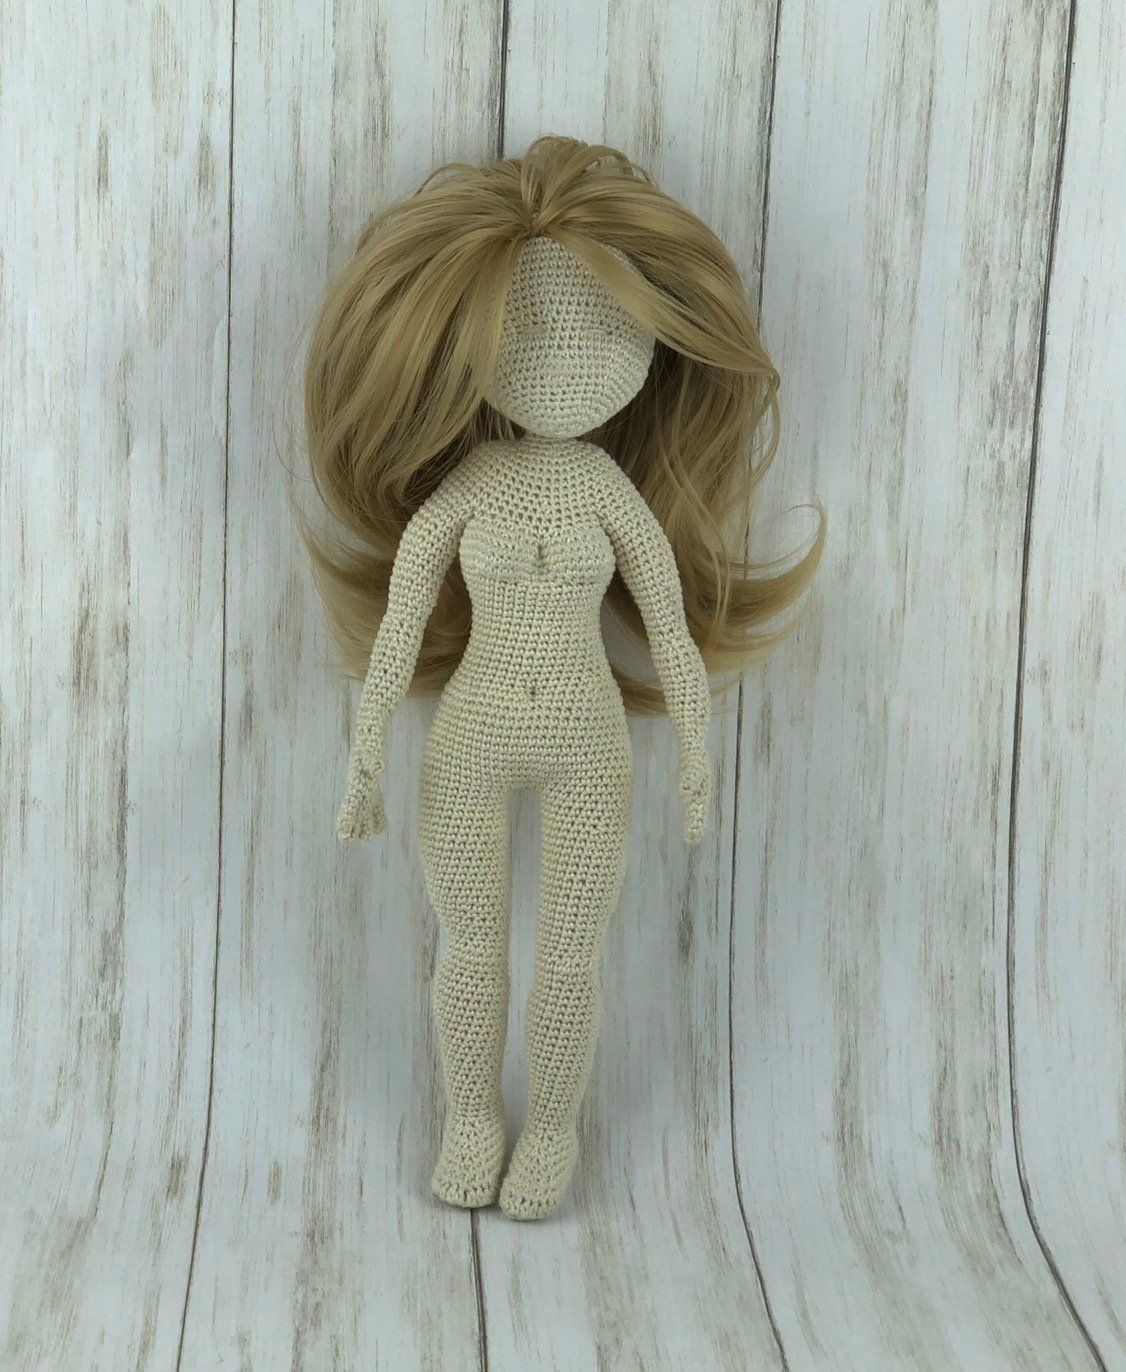 Realistic Crochet Doll Basic Body ( Video + pdf pattern) | Crochet ... | 1372x1126